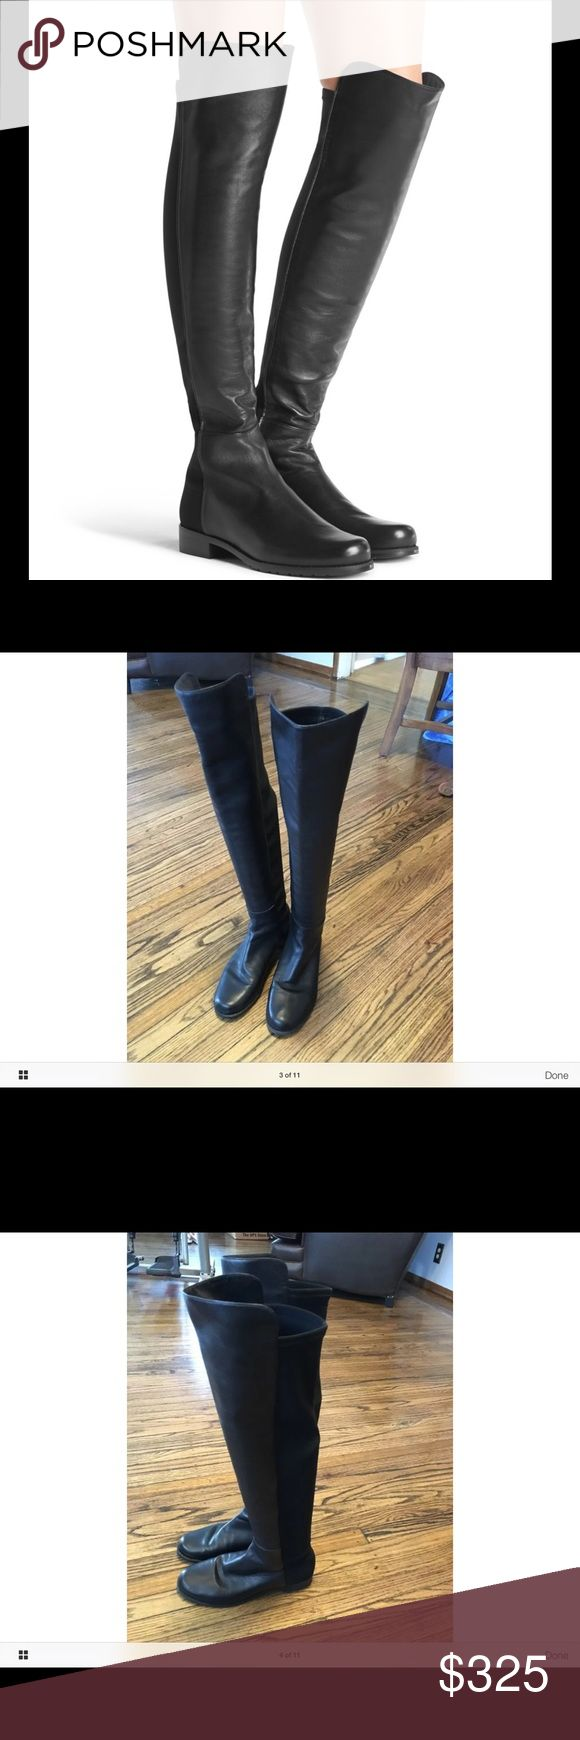 5050 Boot Has some wear. One boot seems to have more wear than the other. Fits true to size. Absolutely stunning boots, comfy and no zip. These are pull on and can adjust to any leg Stuart Weitzman Shoes Over the Knee Boots